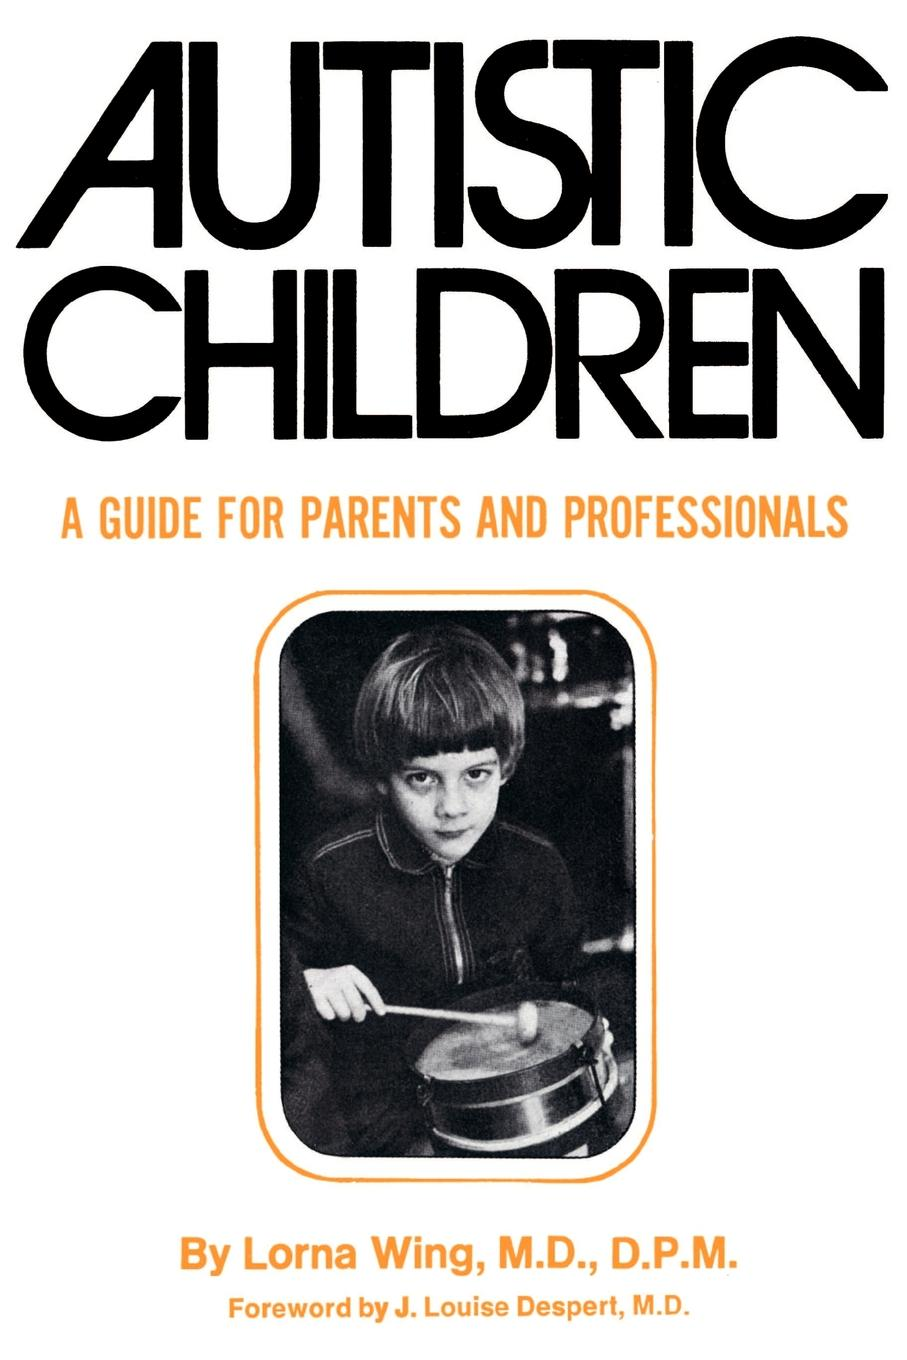 Lorna Wing Autistic Children. A Guide for Parents what constitutes an appropriate education for autistic children